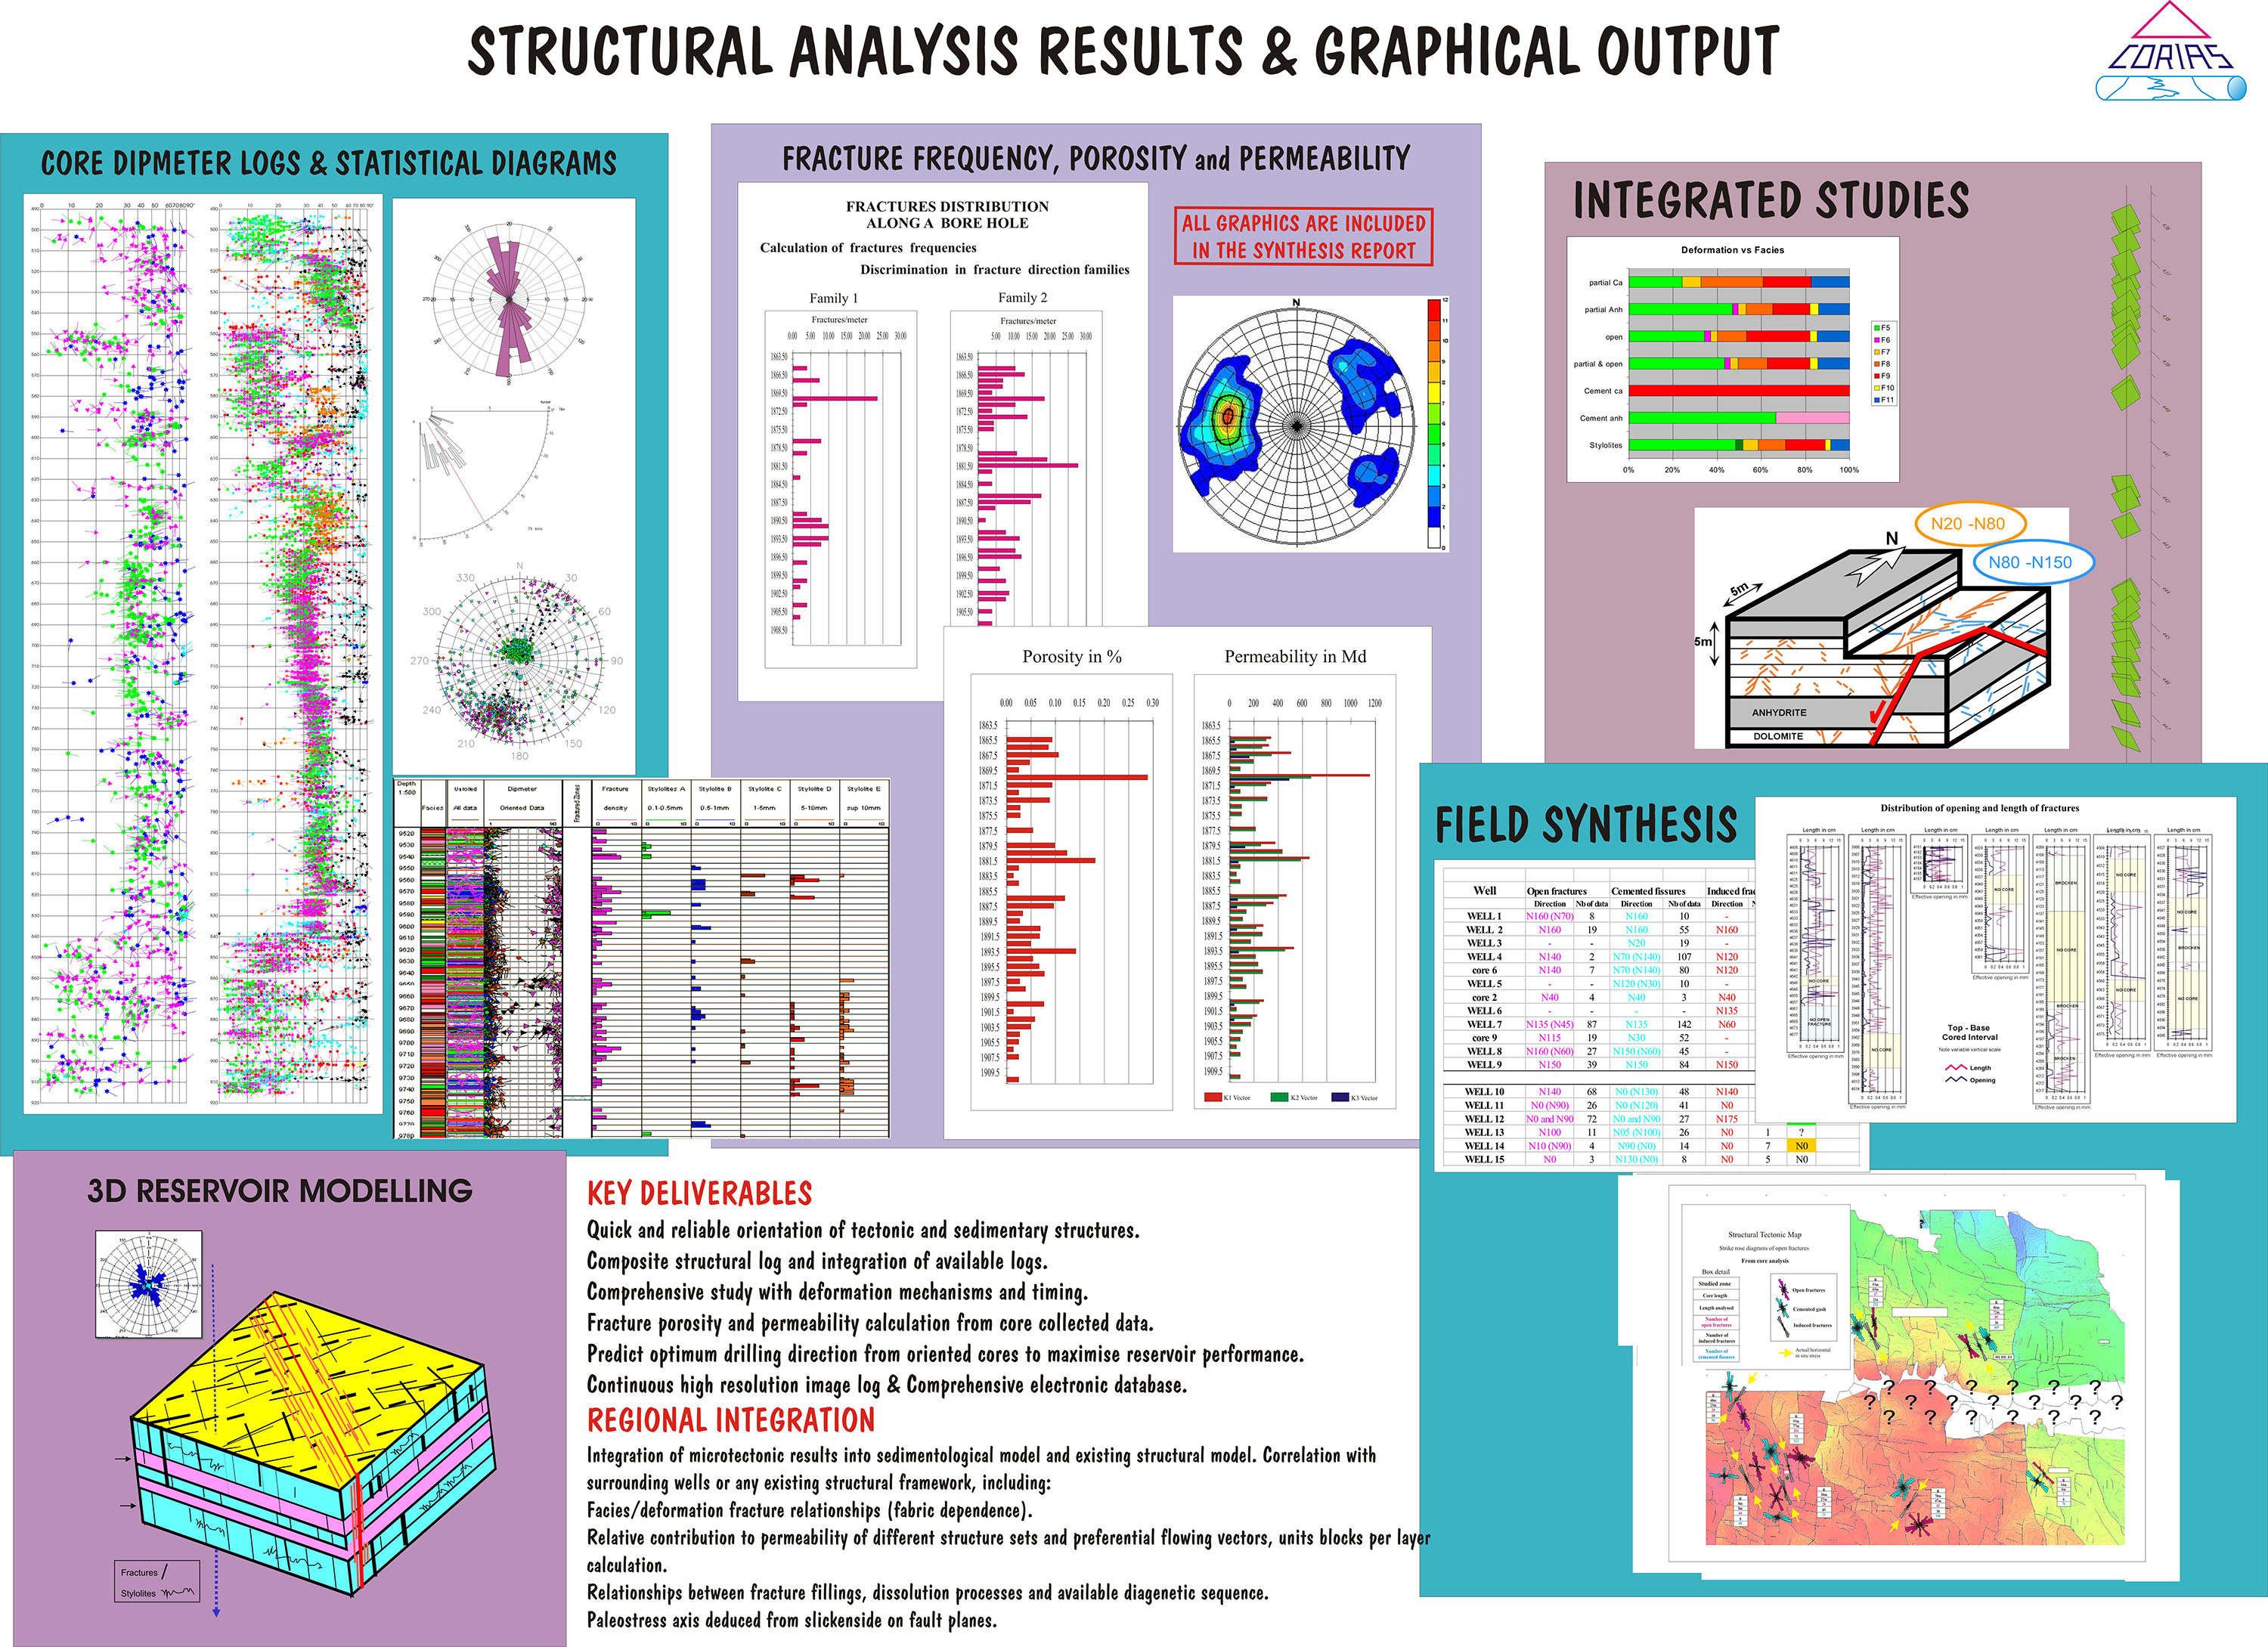 Corias Structural analysis results and graphical output